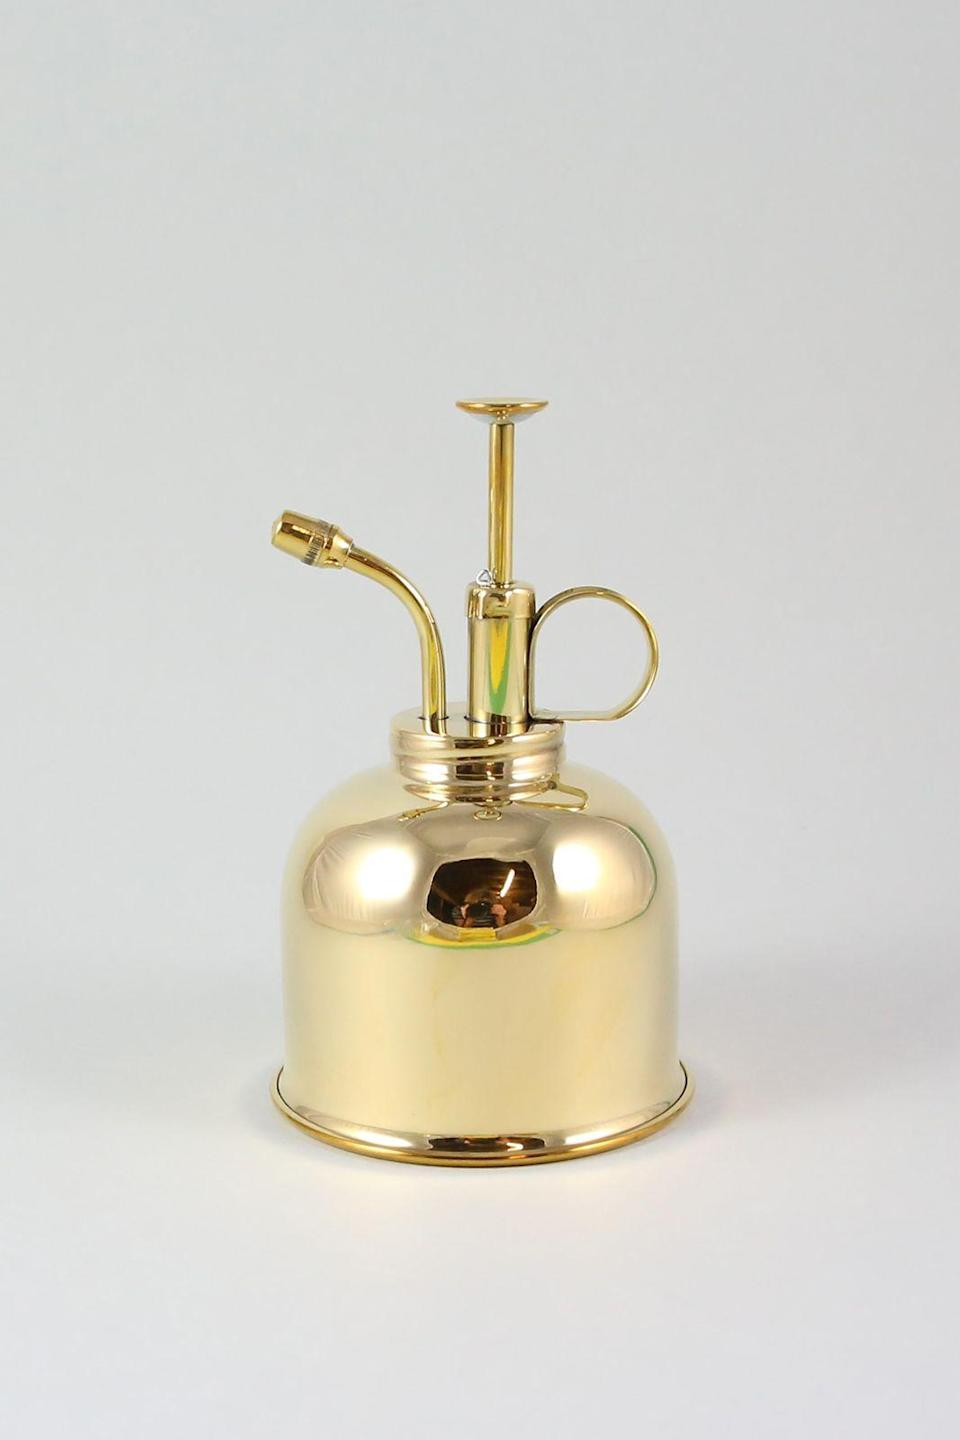 """<p><strong>Brass act</strong></p><p>Even garden apparatus has gone brassy (in the best possible way); dispense with the watering can and give your plants a spritz with this metallic plant mister instead. Yes, we know you could just keep watering your plants with the dregs of your coffee, but when gardening tools look this good on your mantelpiece, who can resist?</p><p>£14.95, <a href=""""https://www.trouva.com/boutique/nook-in-n160uh/brass-plant-mister"""" rel=""""nofollow noopener"""" target=""""_blank"""" data-ylk=""""slk:Nook at trouva.com"""" class=""""link rapid-noclick-resp"""">Nook at trouva.com</a></p>"""